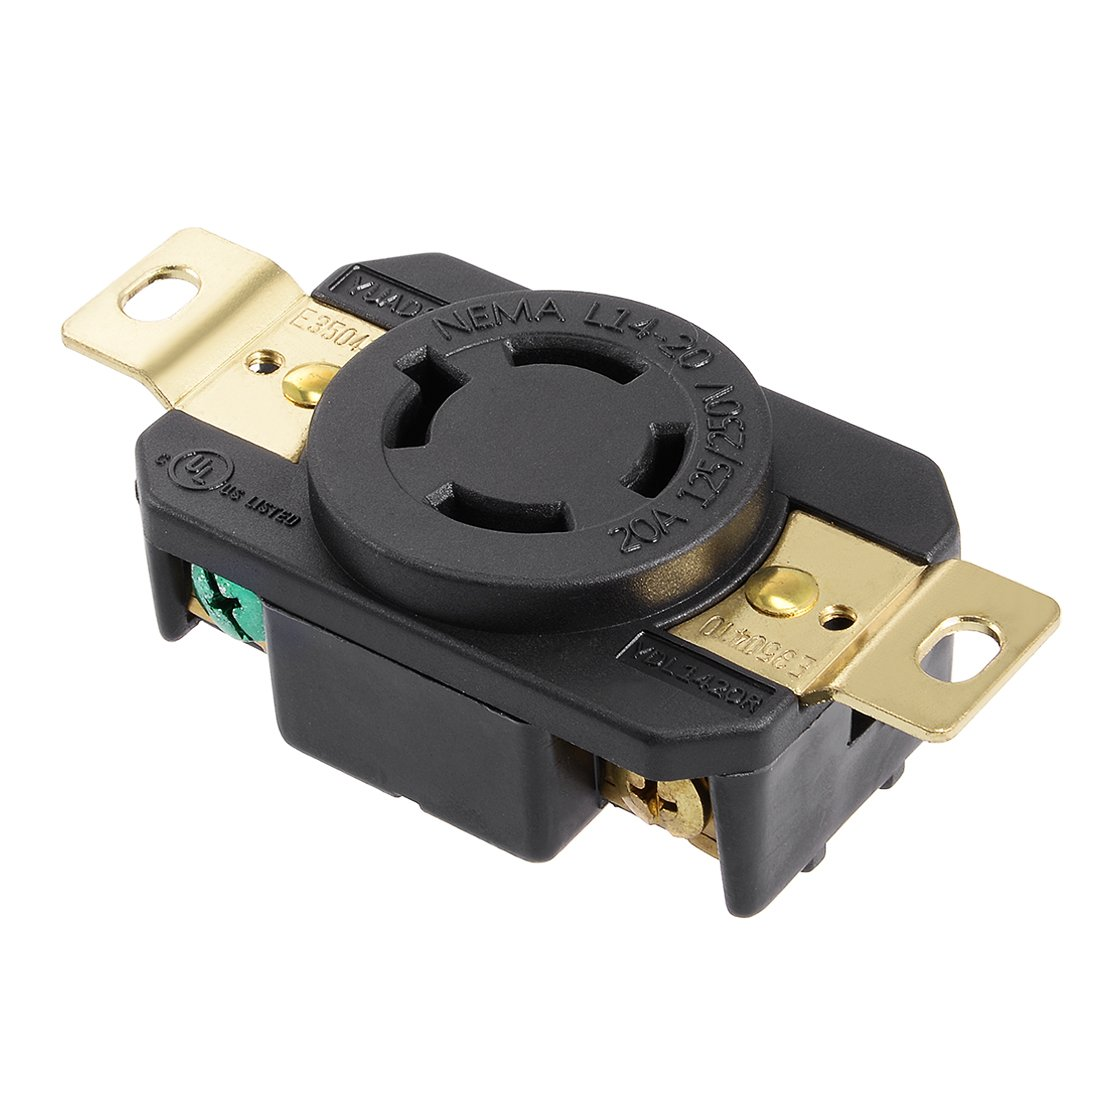 uxcell UL Listed, Locking Receptacle, 20A, AC 125/250V, NEMA L14-20R, 3P, 4W, Industrial Grade, Grouding, for Generator Power Cable, US Plug, YUADON Authorized